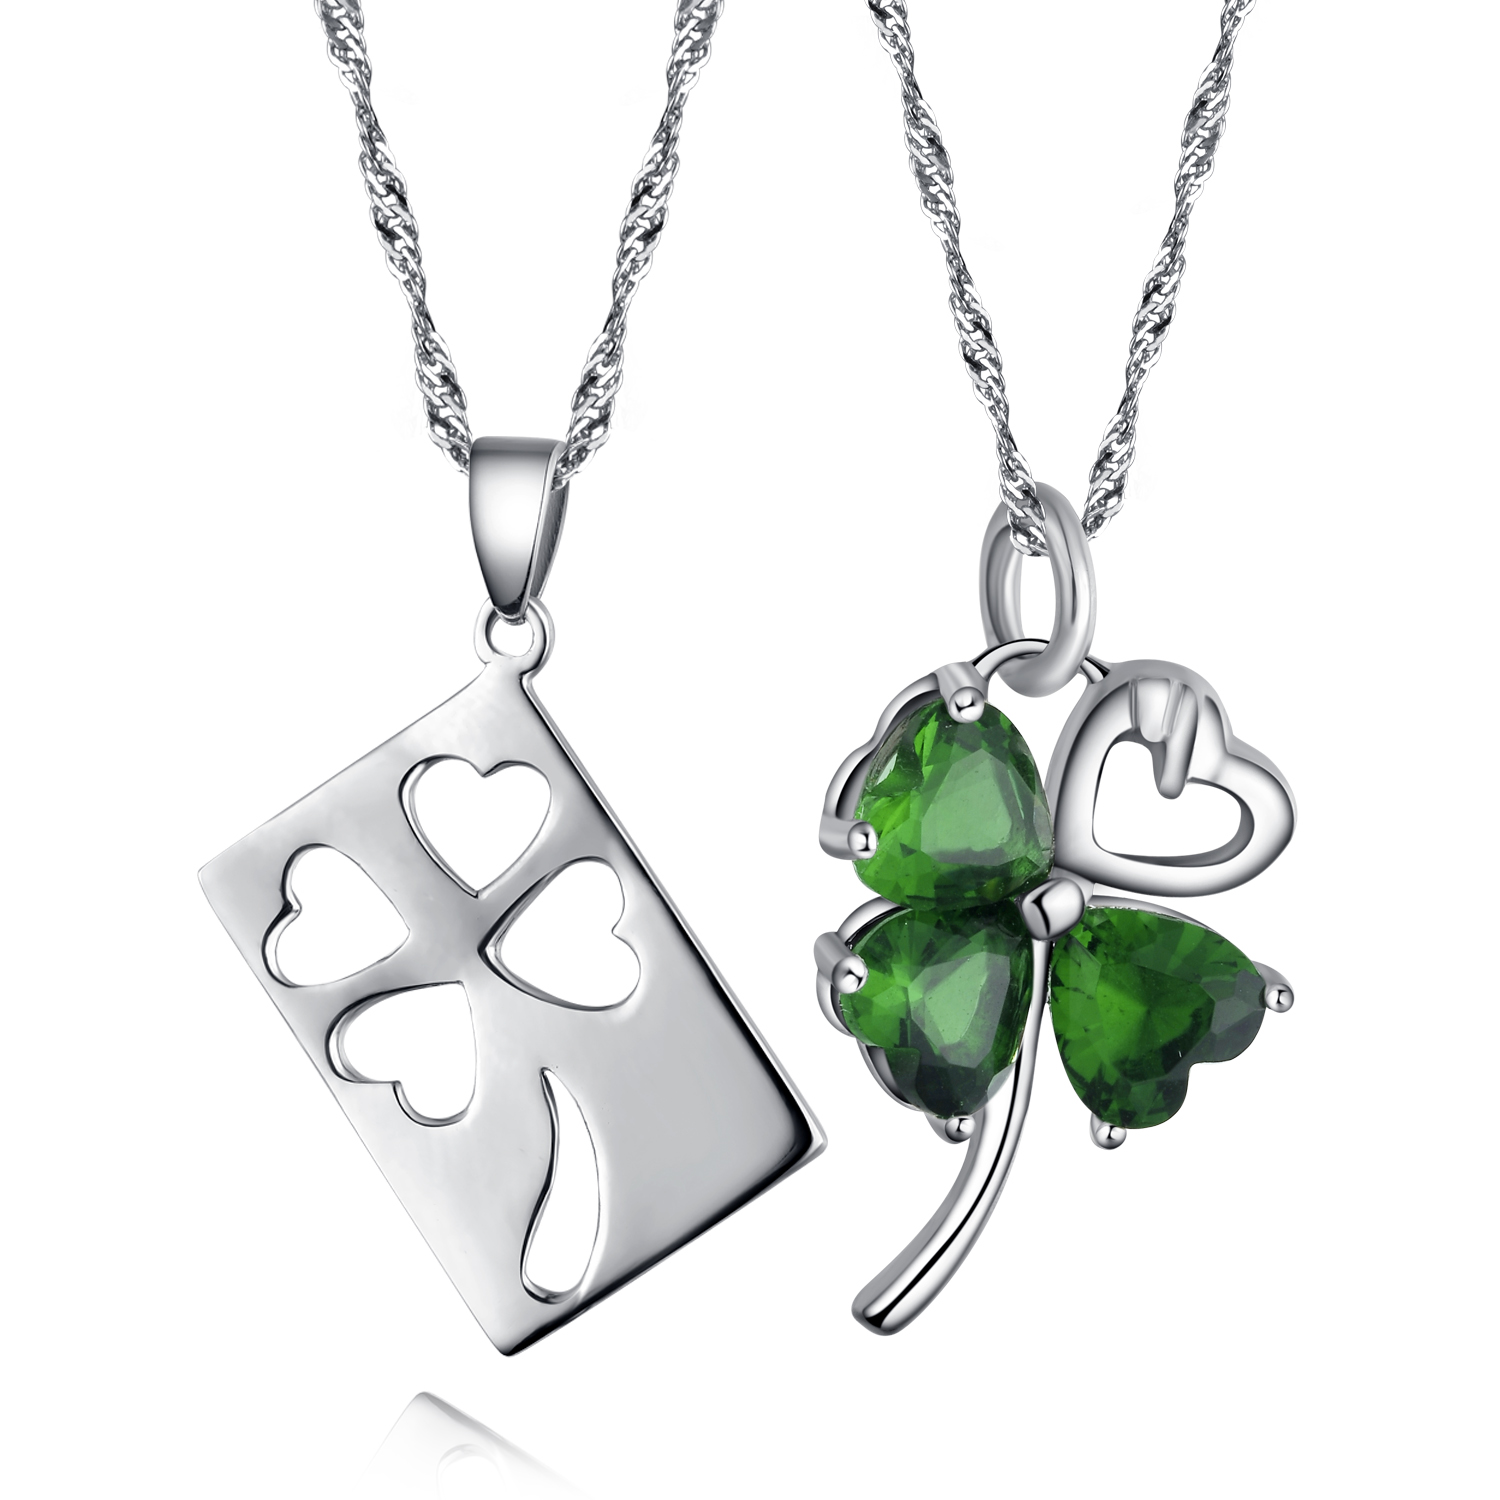 p long s silver chuanky leaf ts clover pendants tinysand four necklace